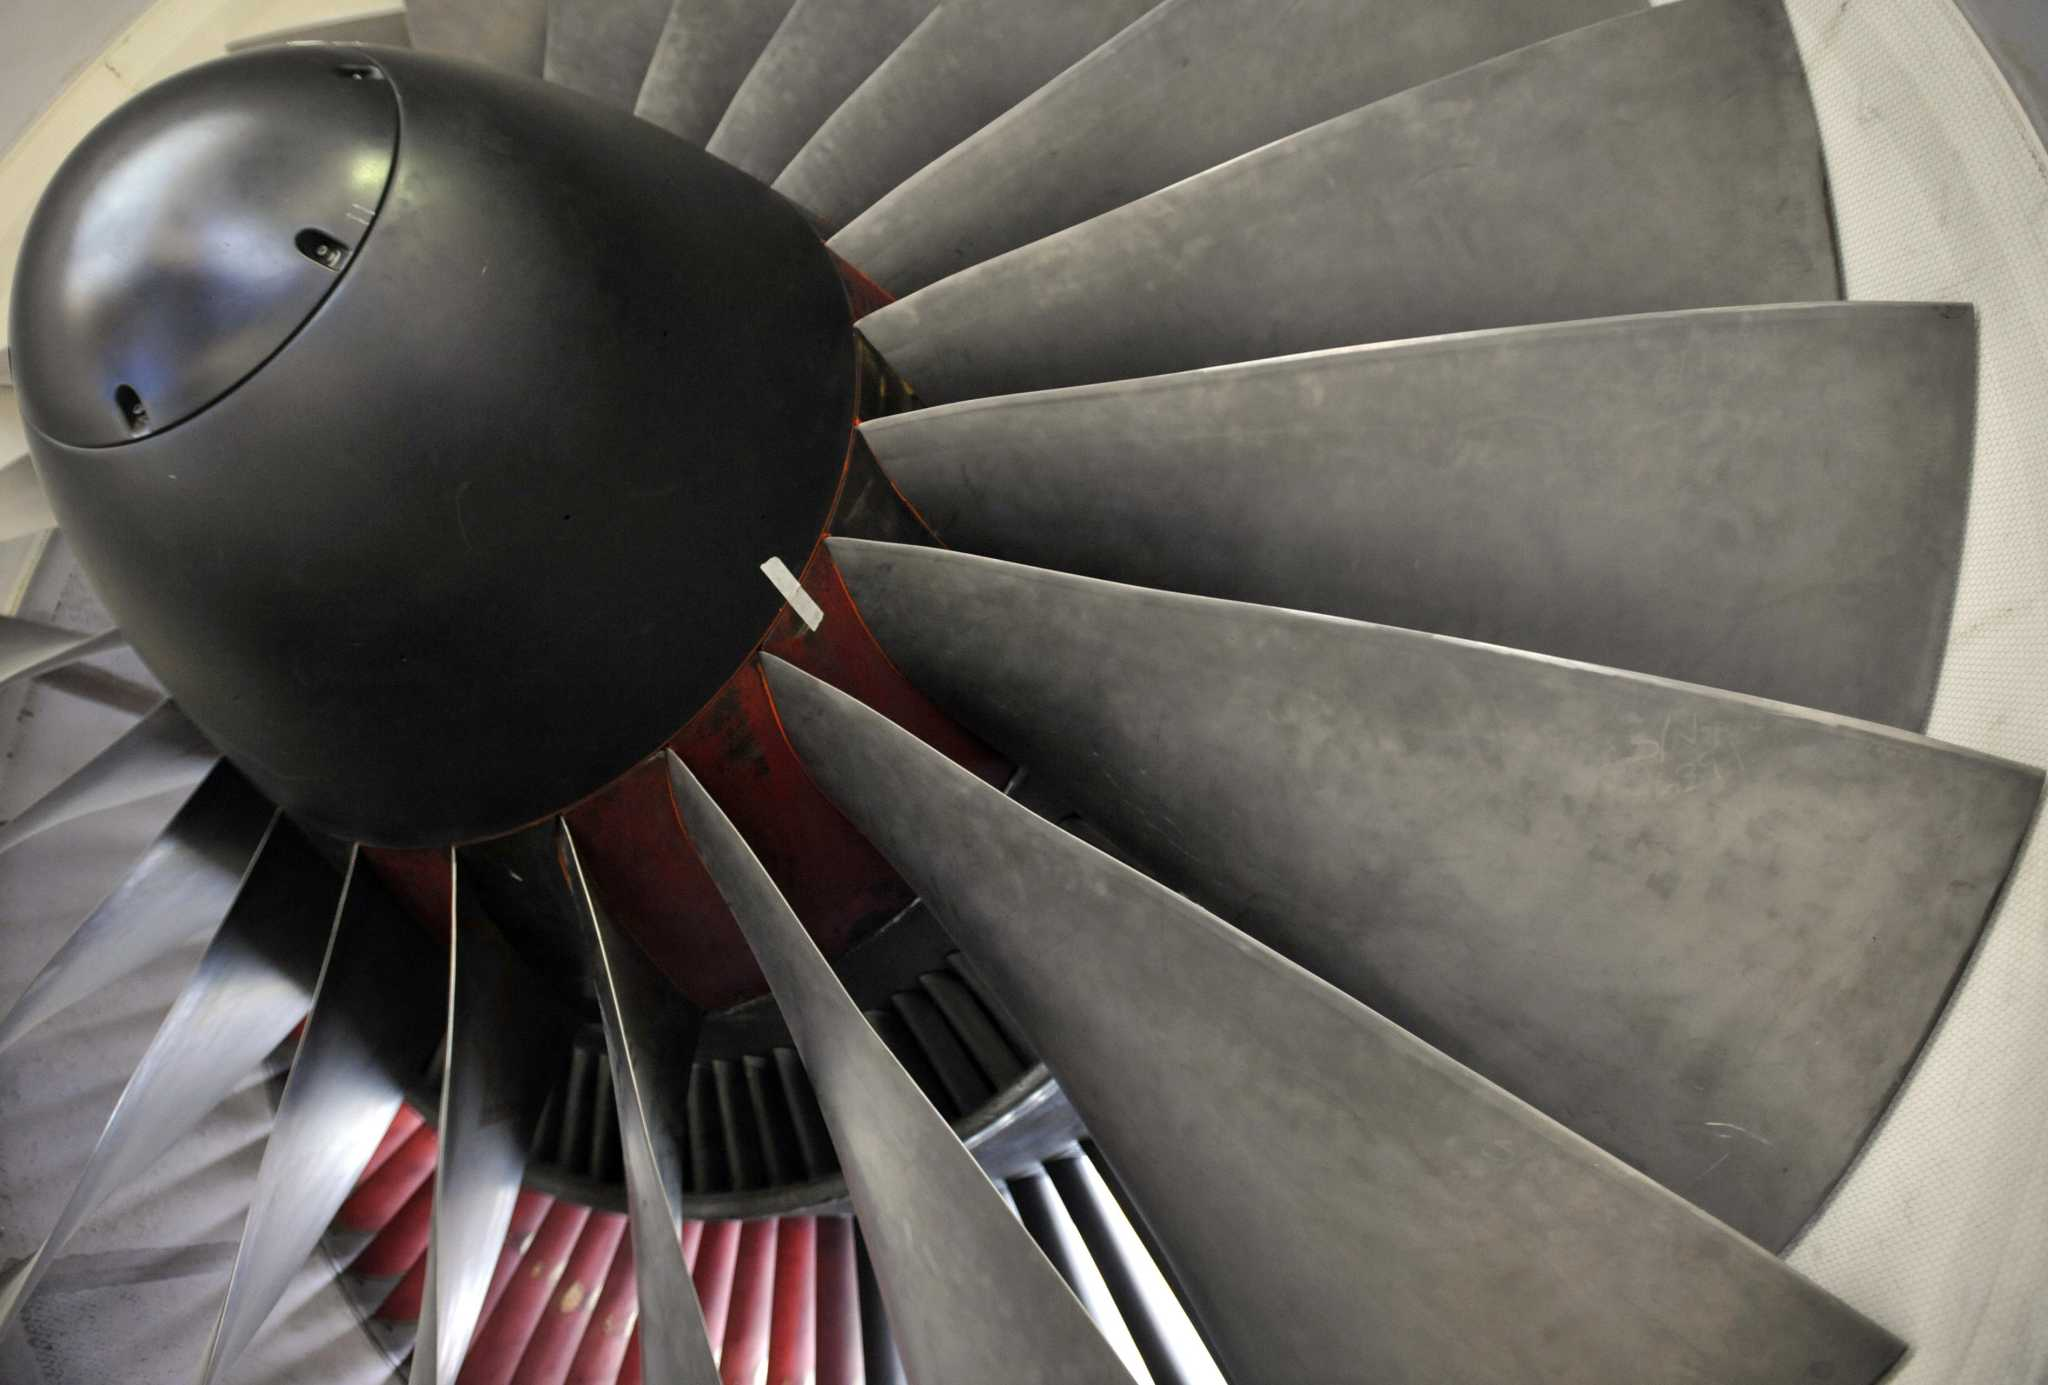 Aviation analyst doesn't expect engine failure to bring down Connecticut-based Pratt & Whitney